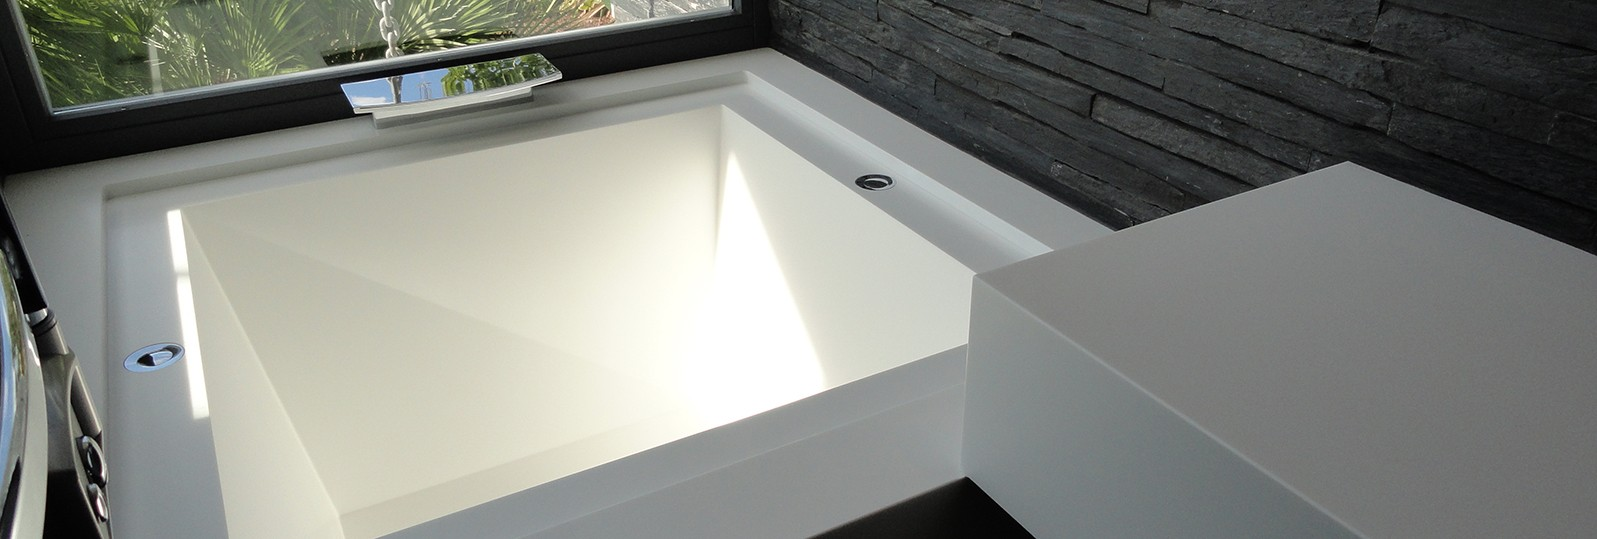 hanex white bath